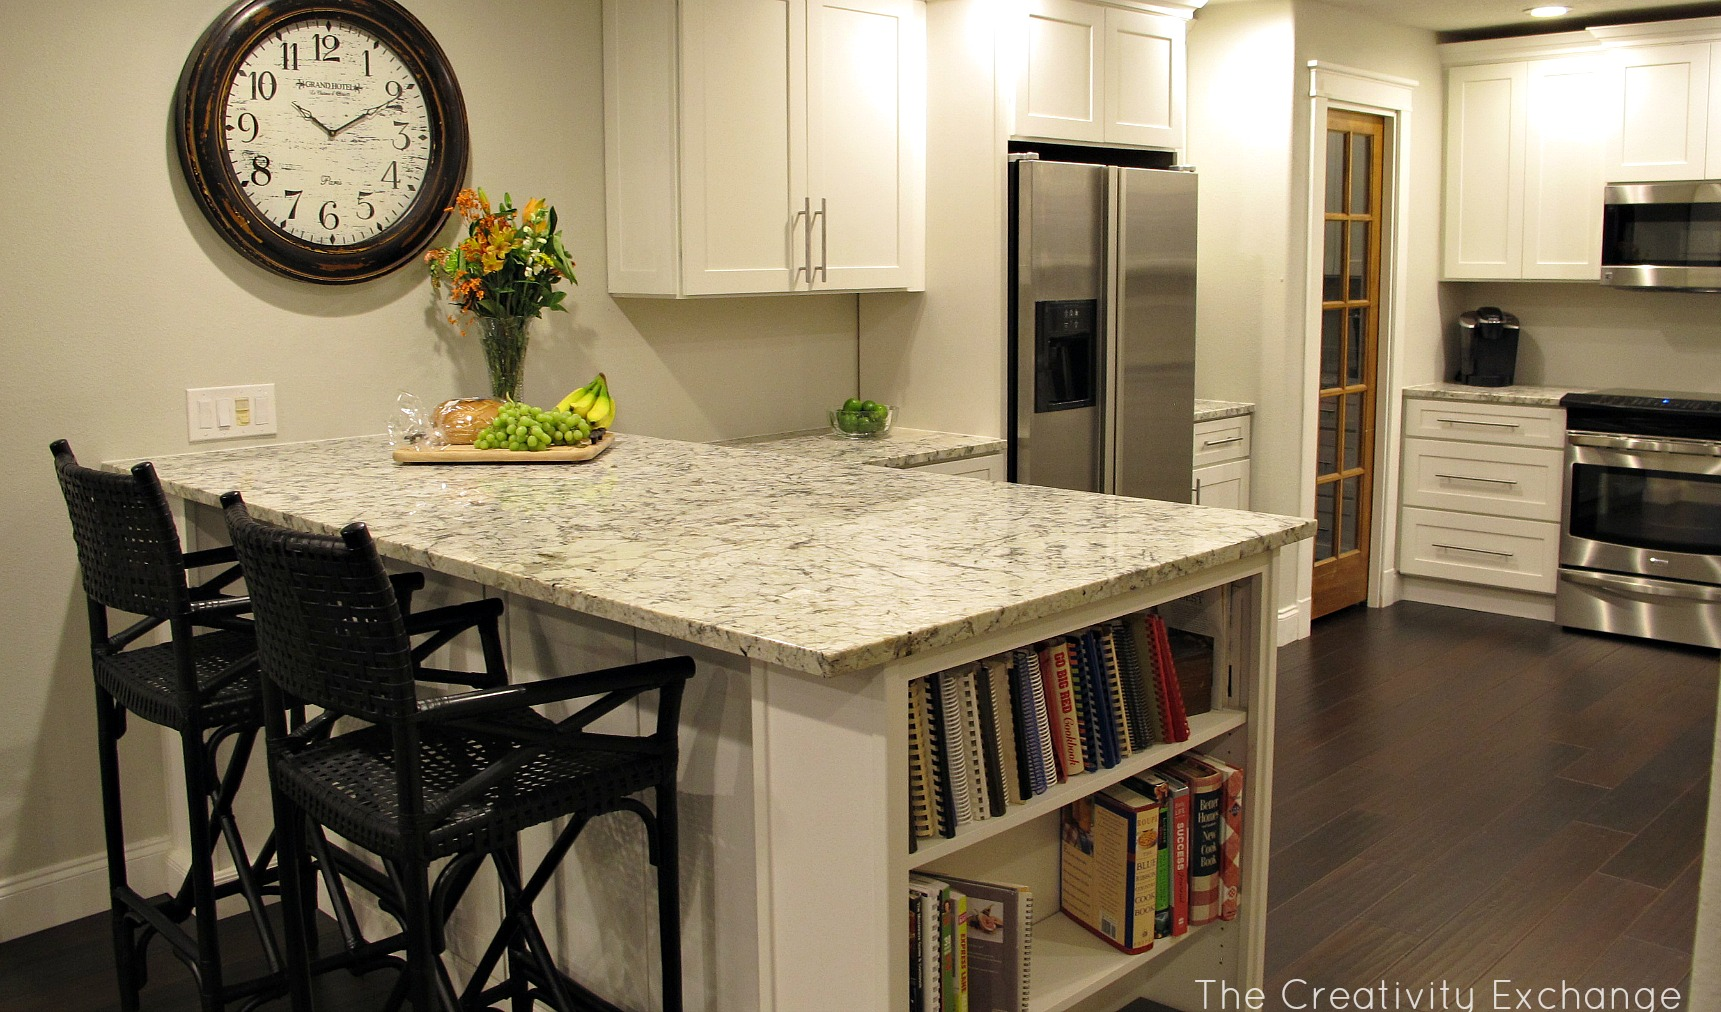 Kitchen Remodeling Ideas Before And After cousin frank's amazing kitchen remodel {before & after}